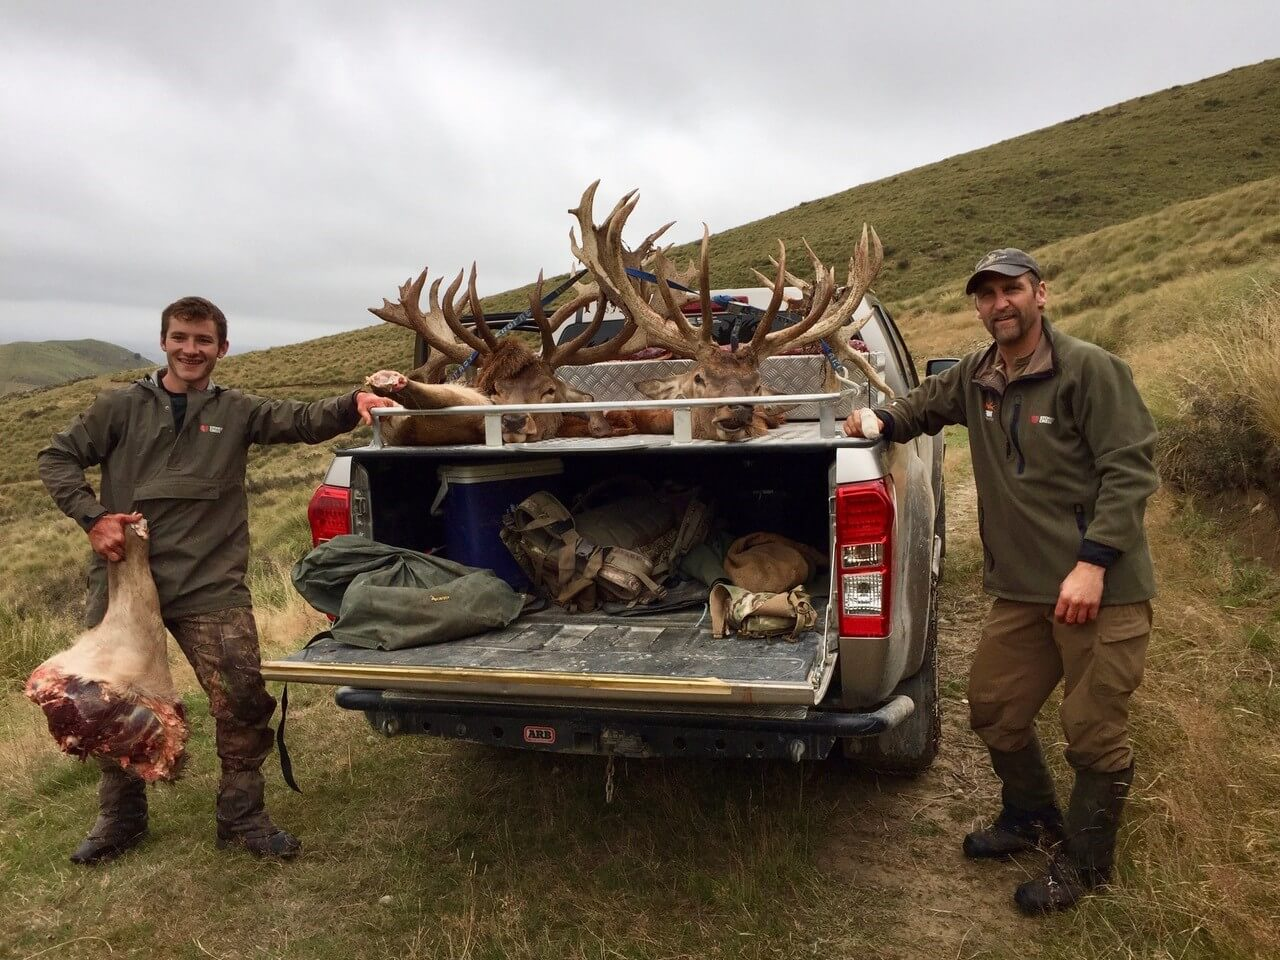 Taking Wild Meat Back Home from Hunting in New Zealand